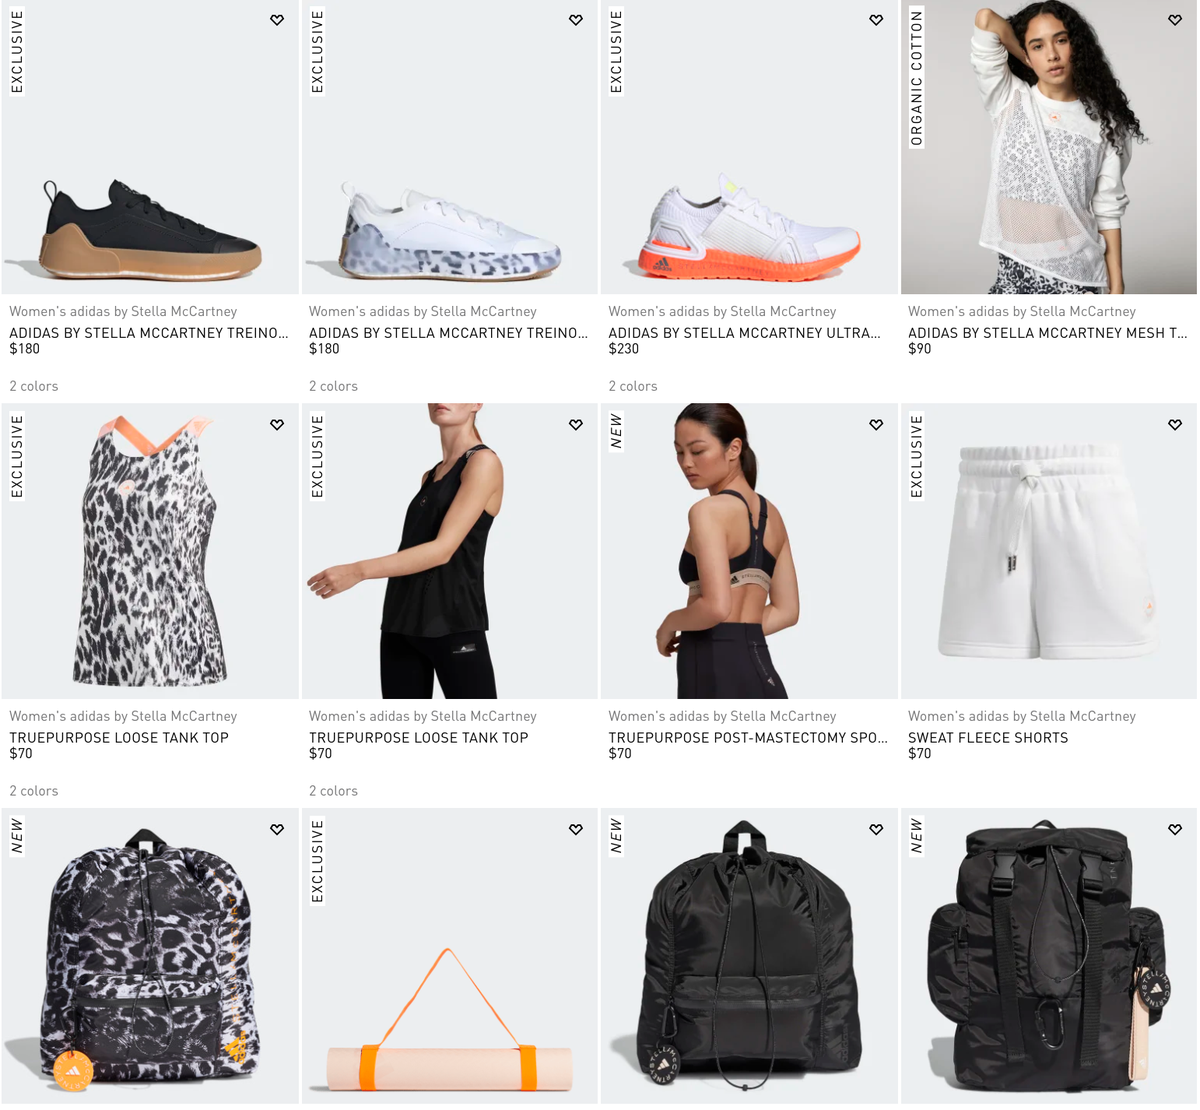 Sole Links On Twitter Ad New Adidas By Stella Mccartney Collection Dropped Via Adidas Us Https T Co Bewg5yyevn